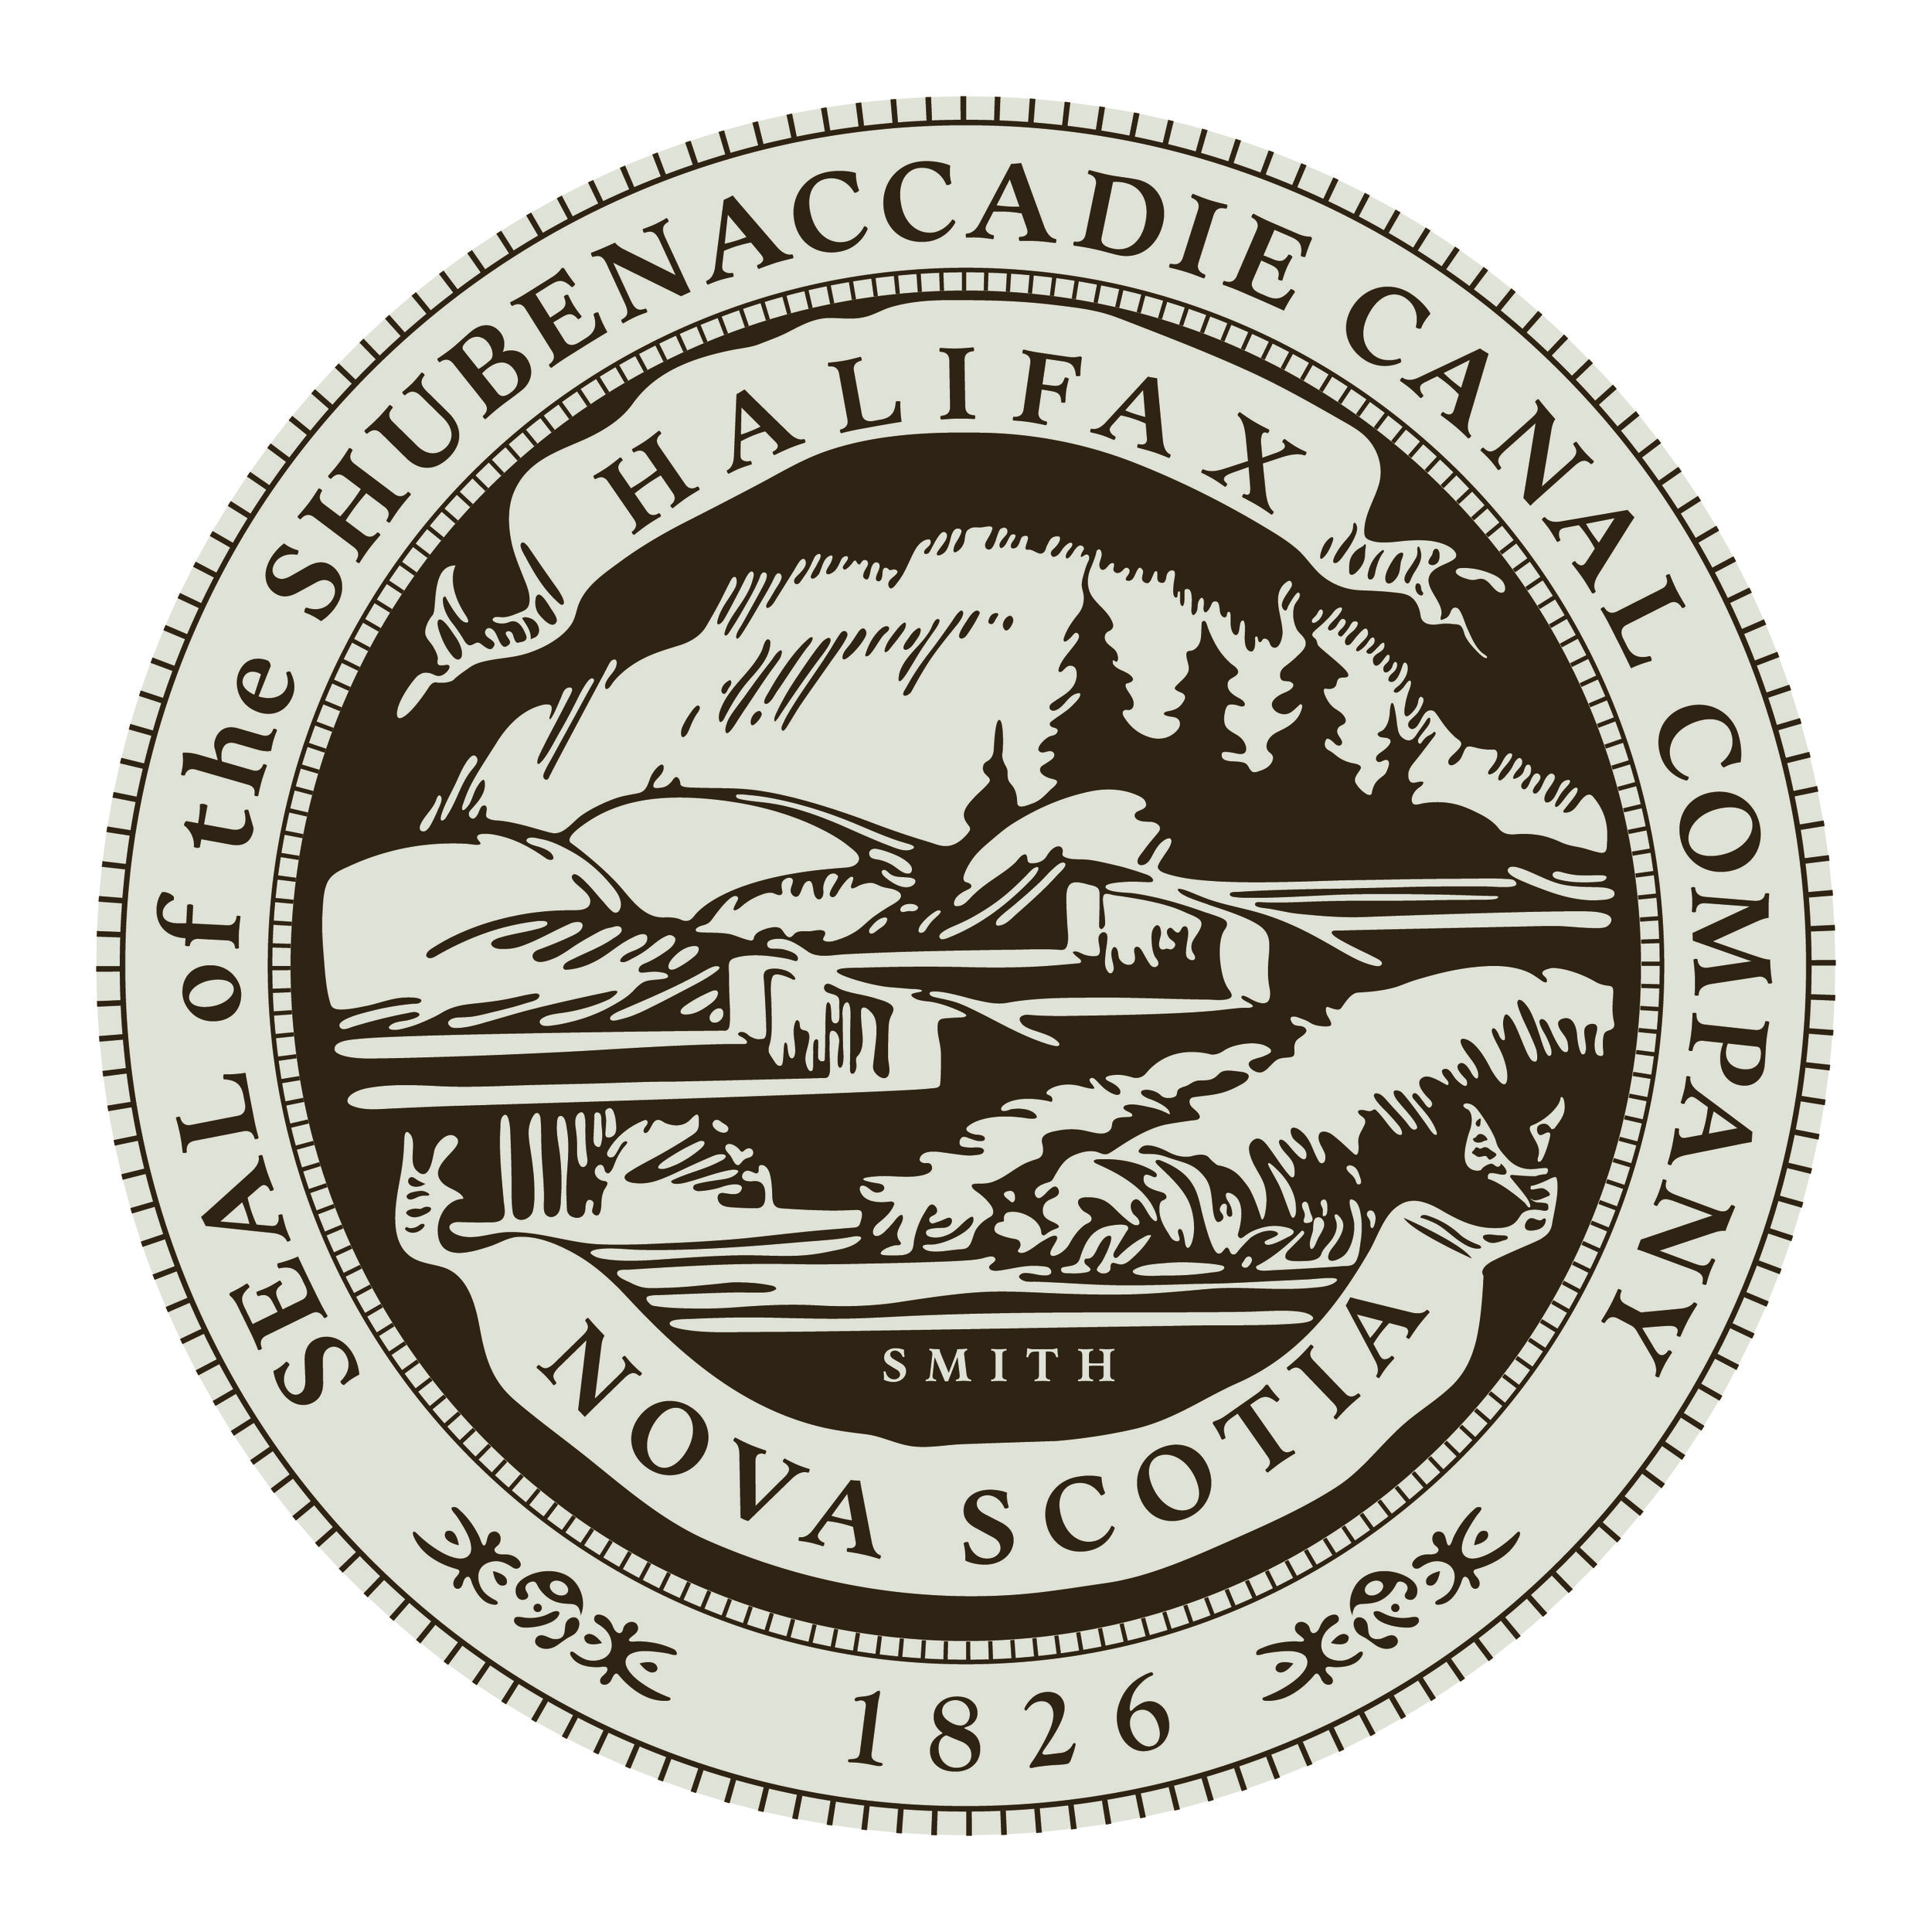 The seal of the Shubenacadie Canal Company.